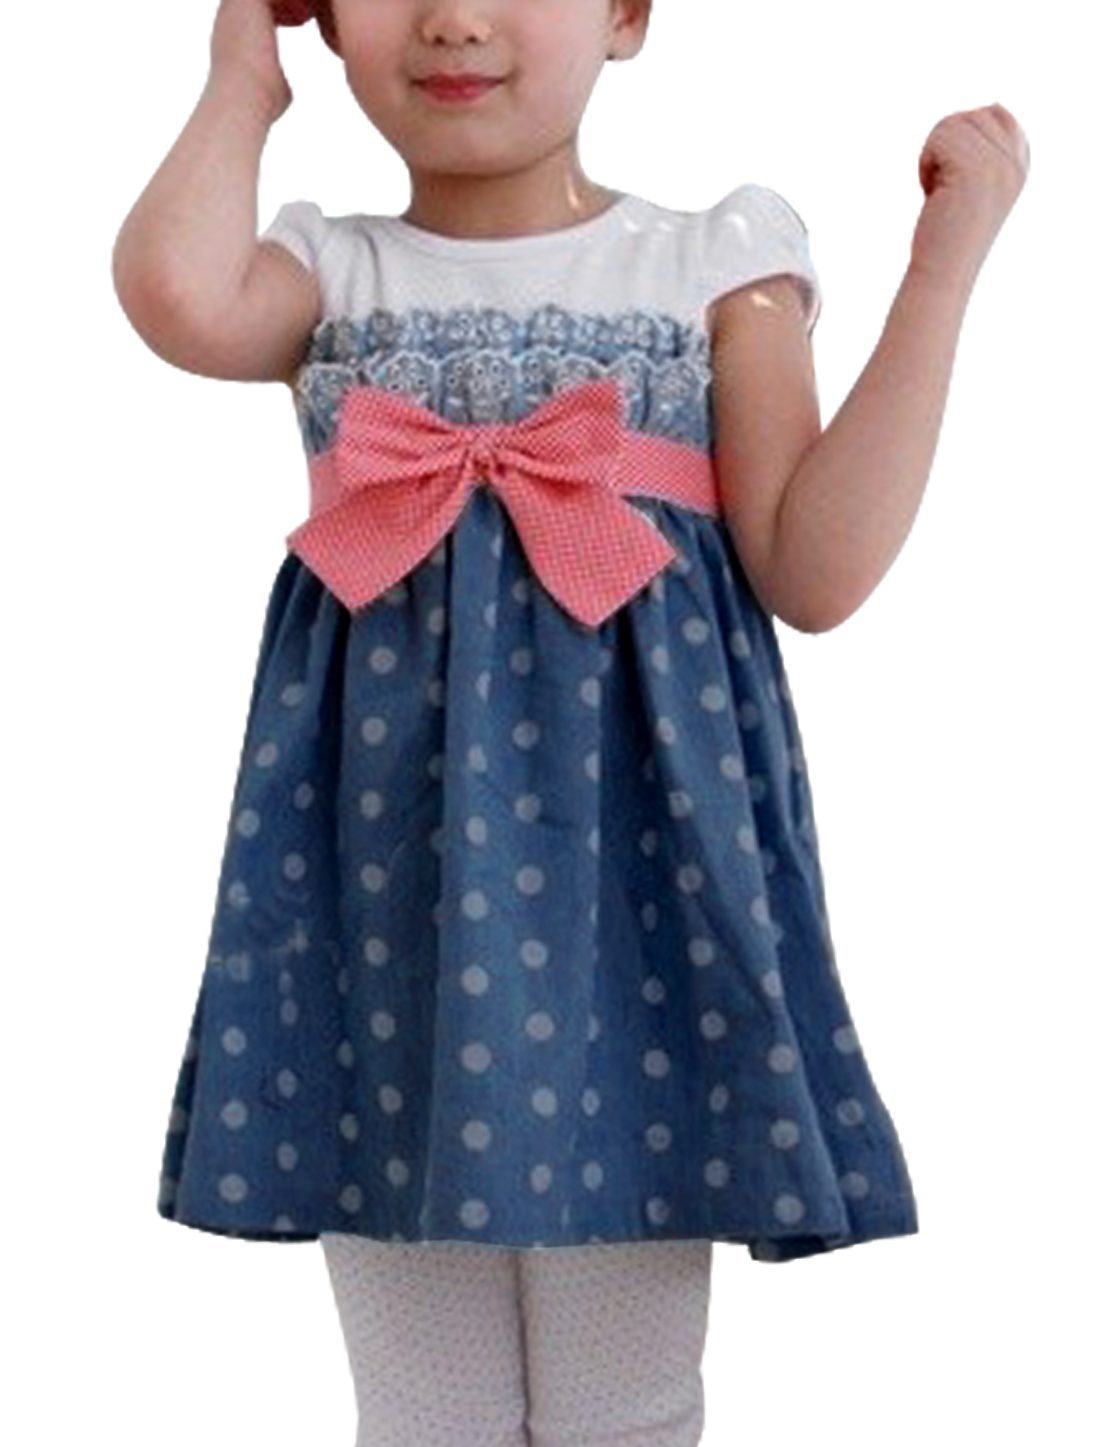 Round Neck Cap Sleeve Dots Pattern Blue Dress for Girls 12 Month